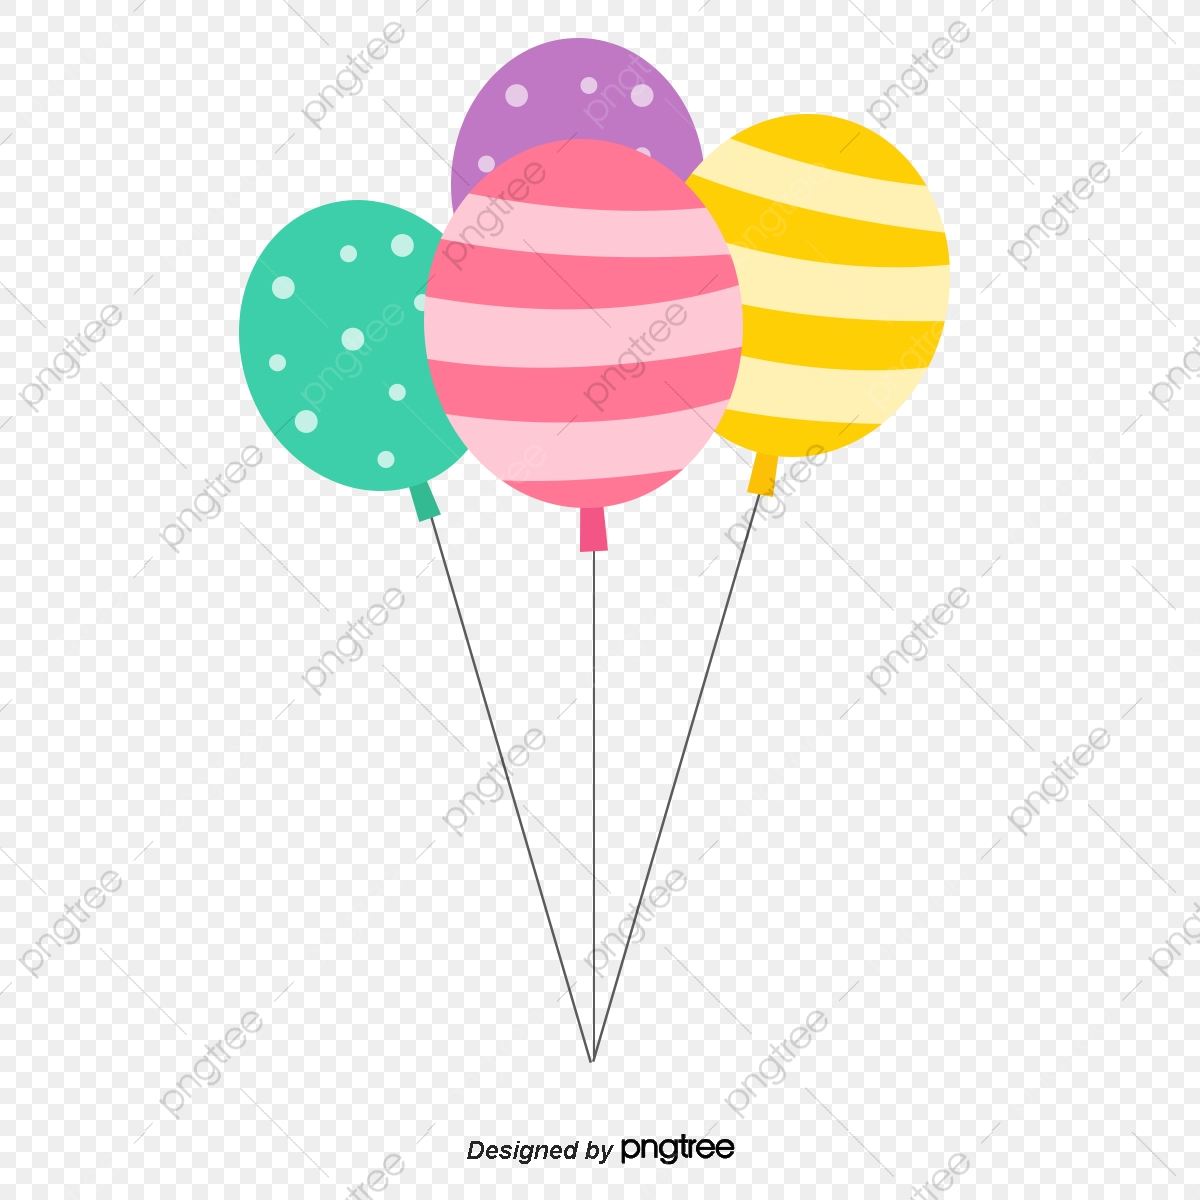 Cartoon color balloon for. Celebrate clipart cute